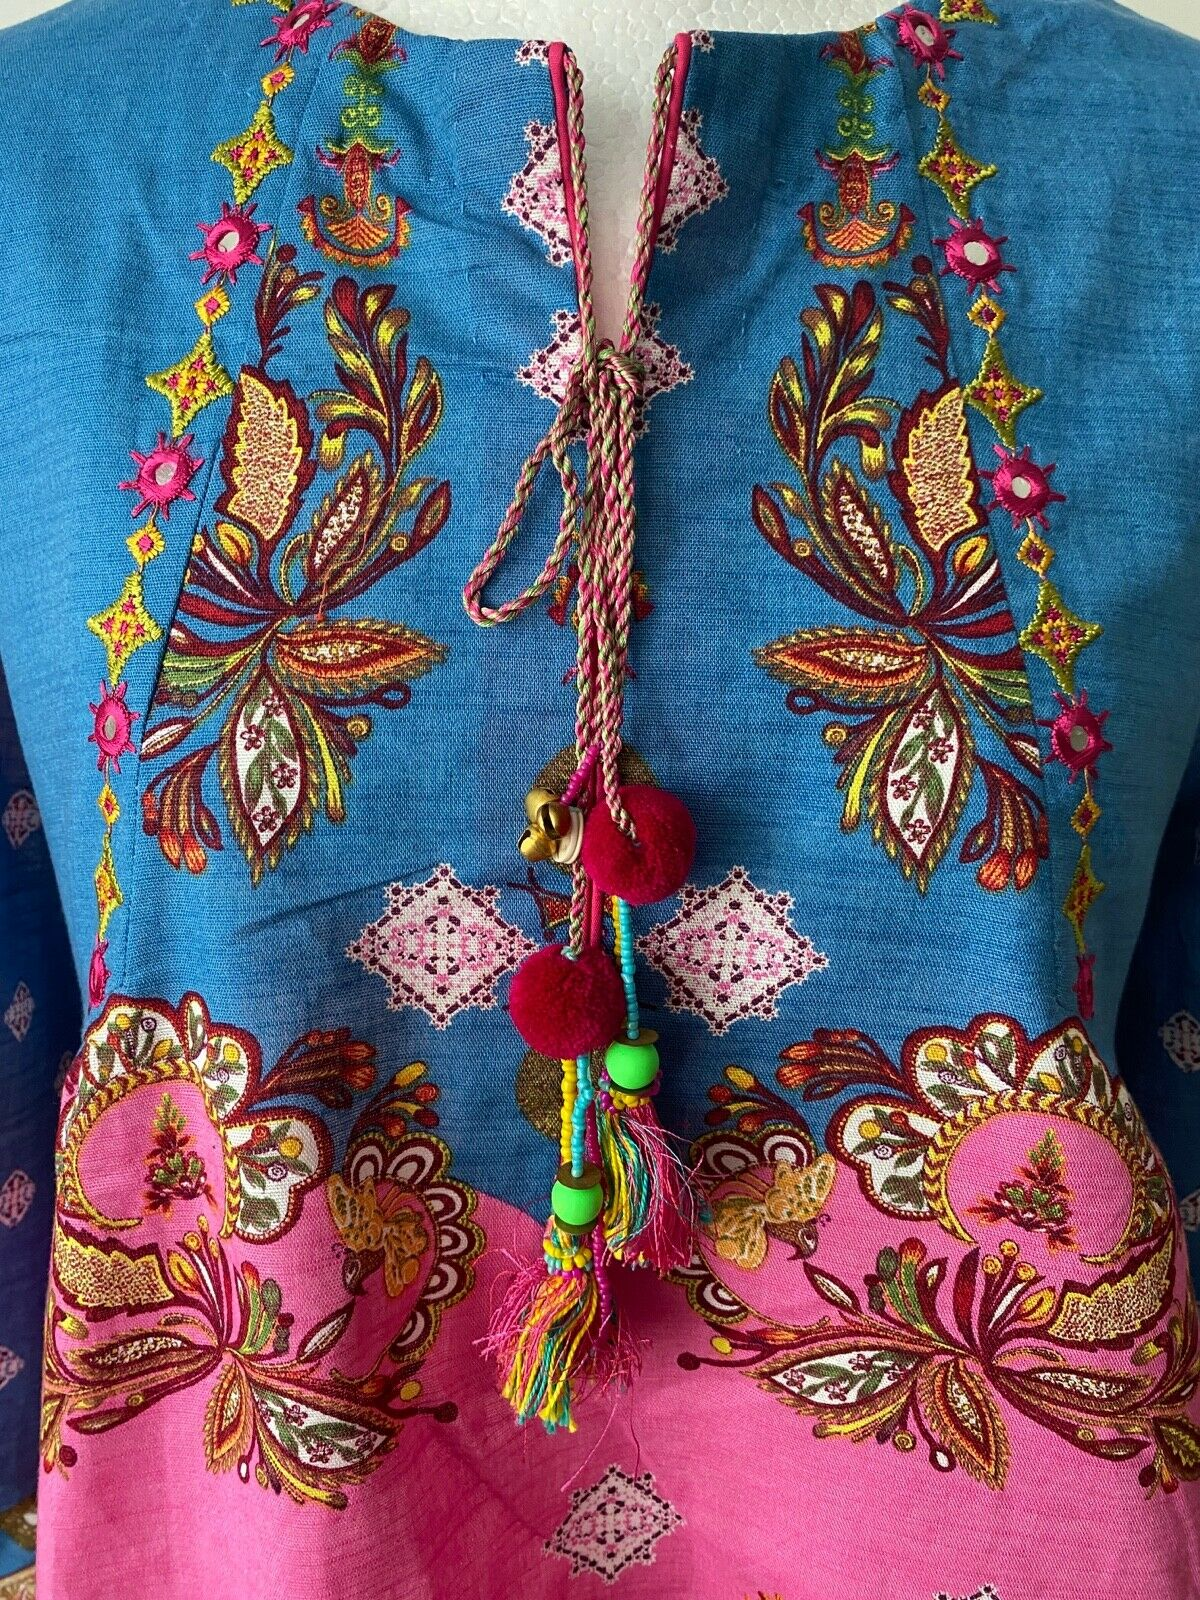 Ethnic by outfitters Fusion Tops Printed Top Embroidered Size M